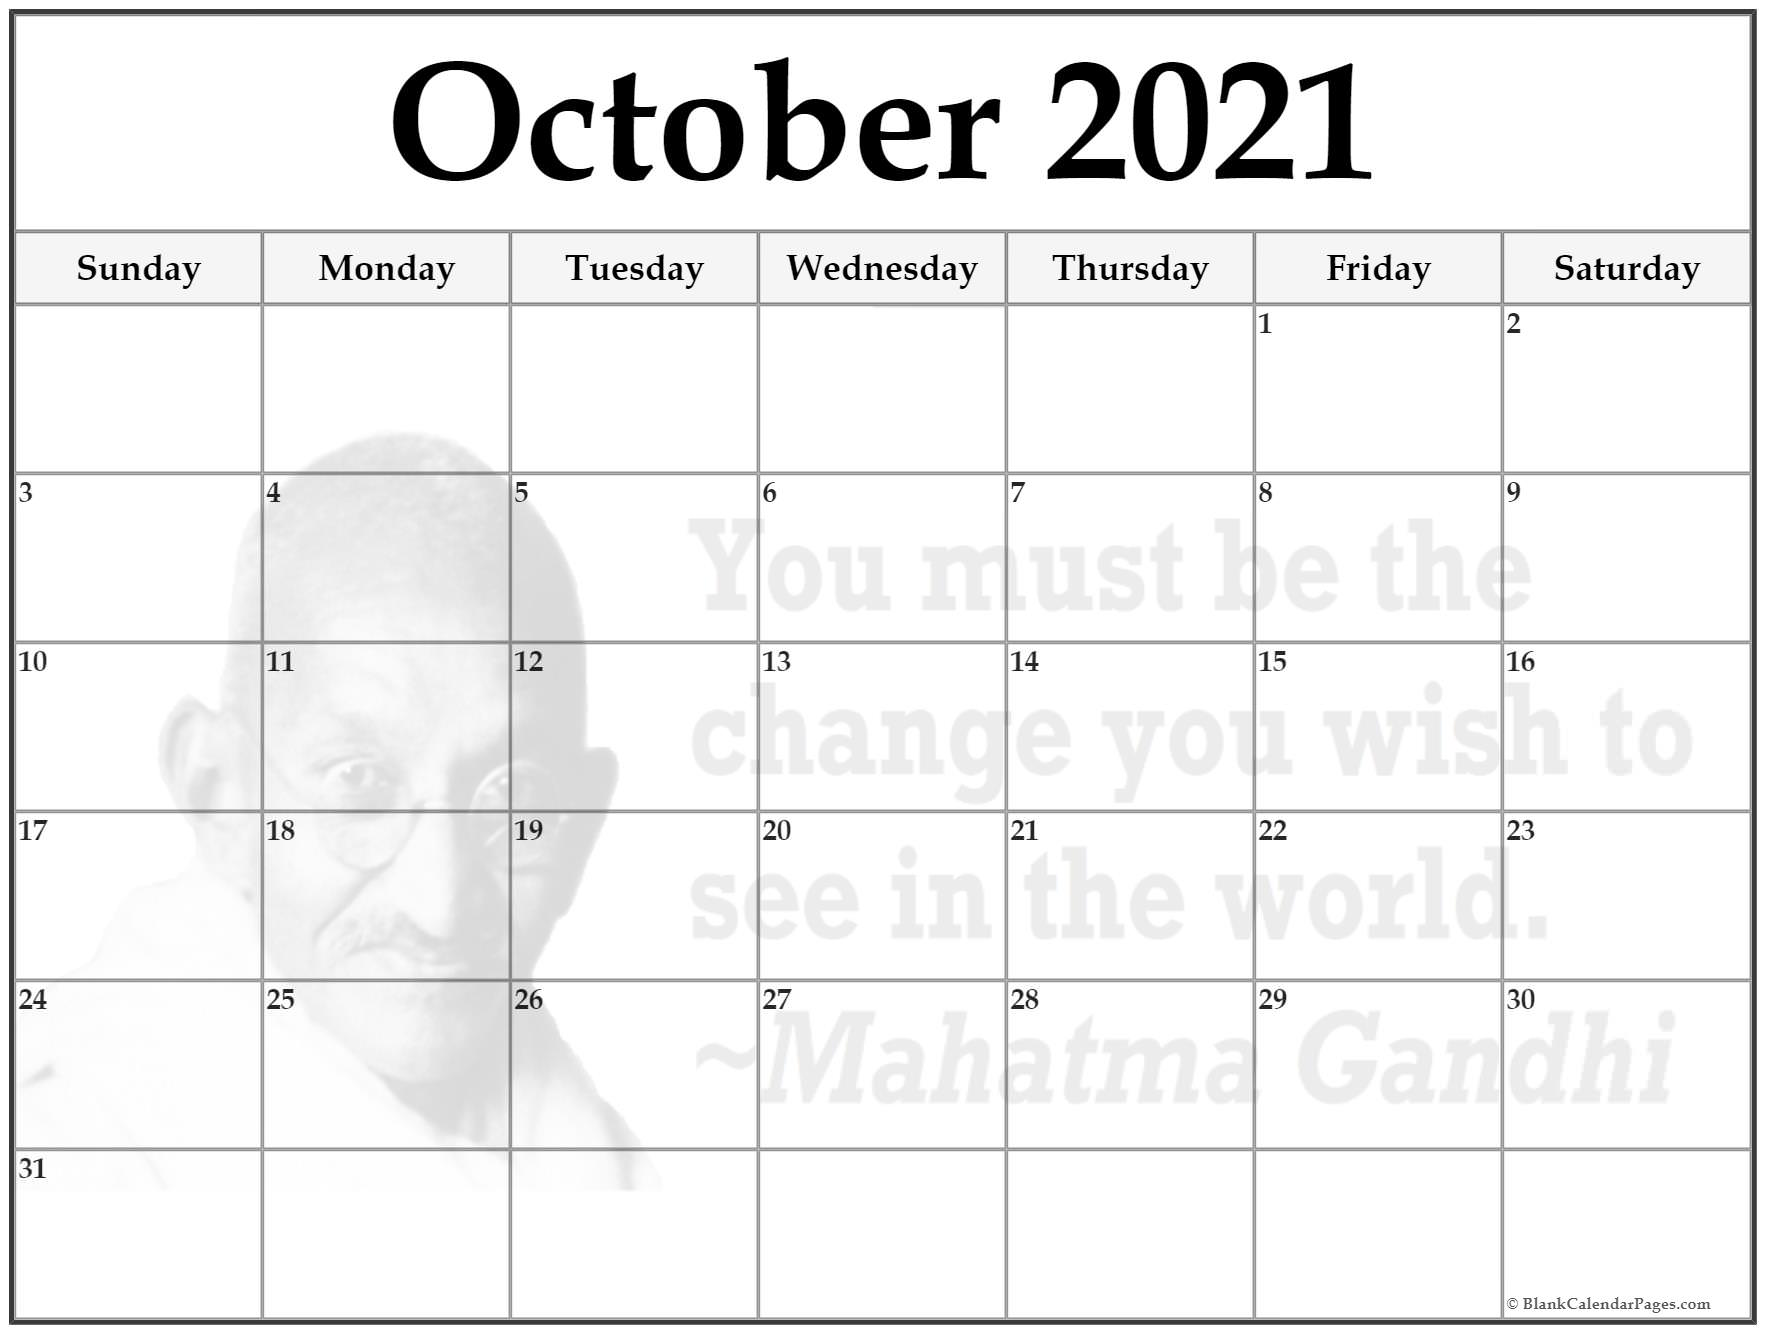 October 2018 monthly calendar template. You must be the change you wish to see in the world. ~Mahatma Gandhi